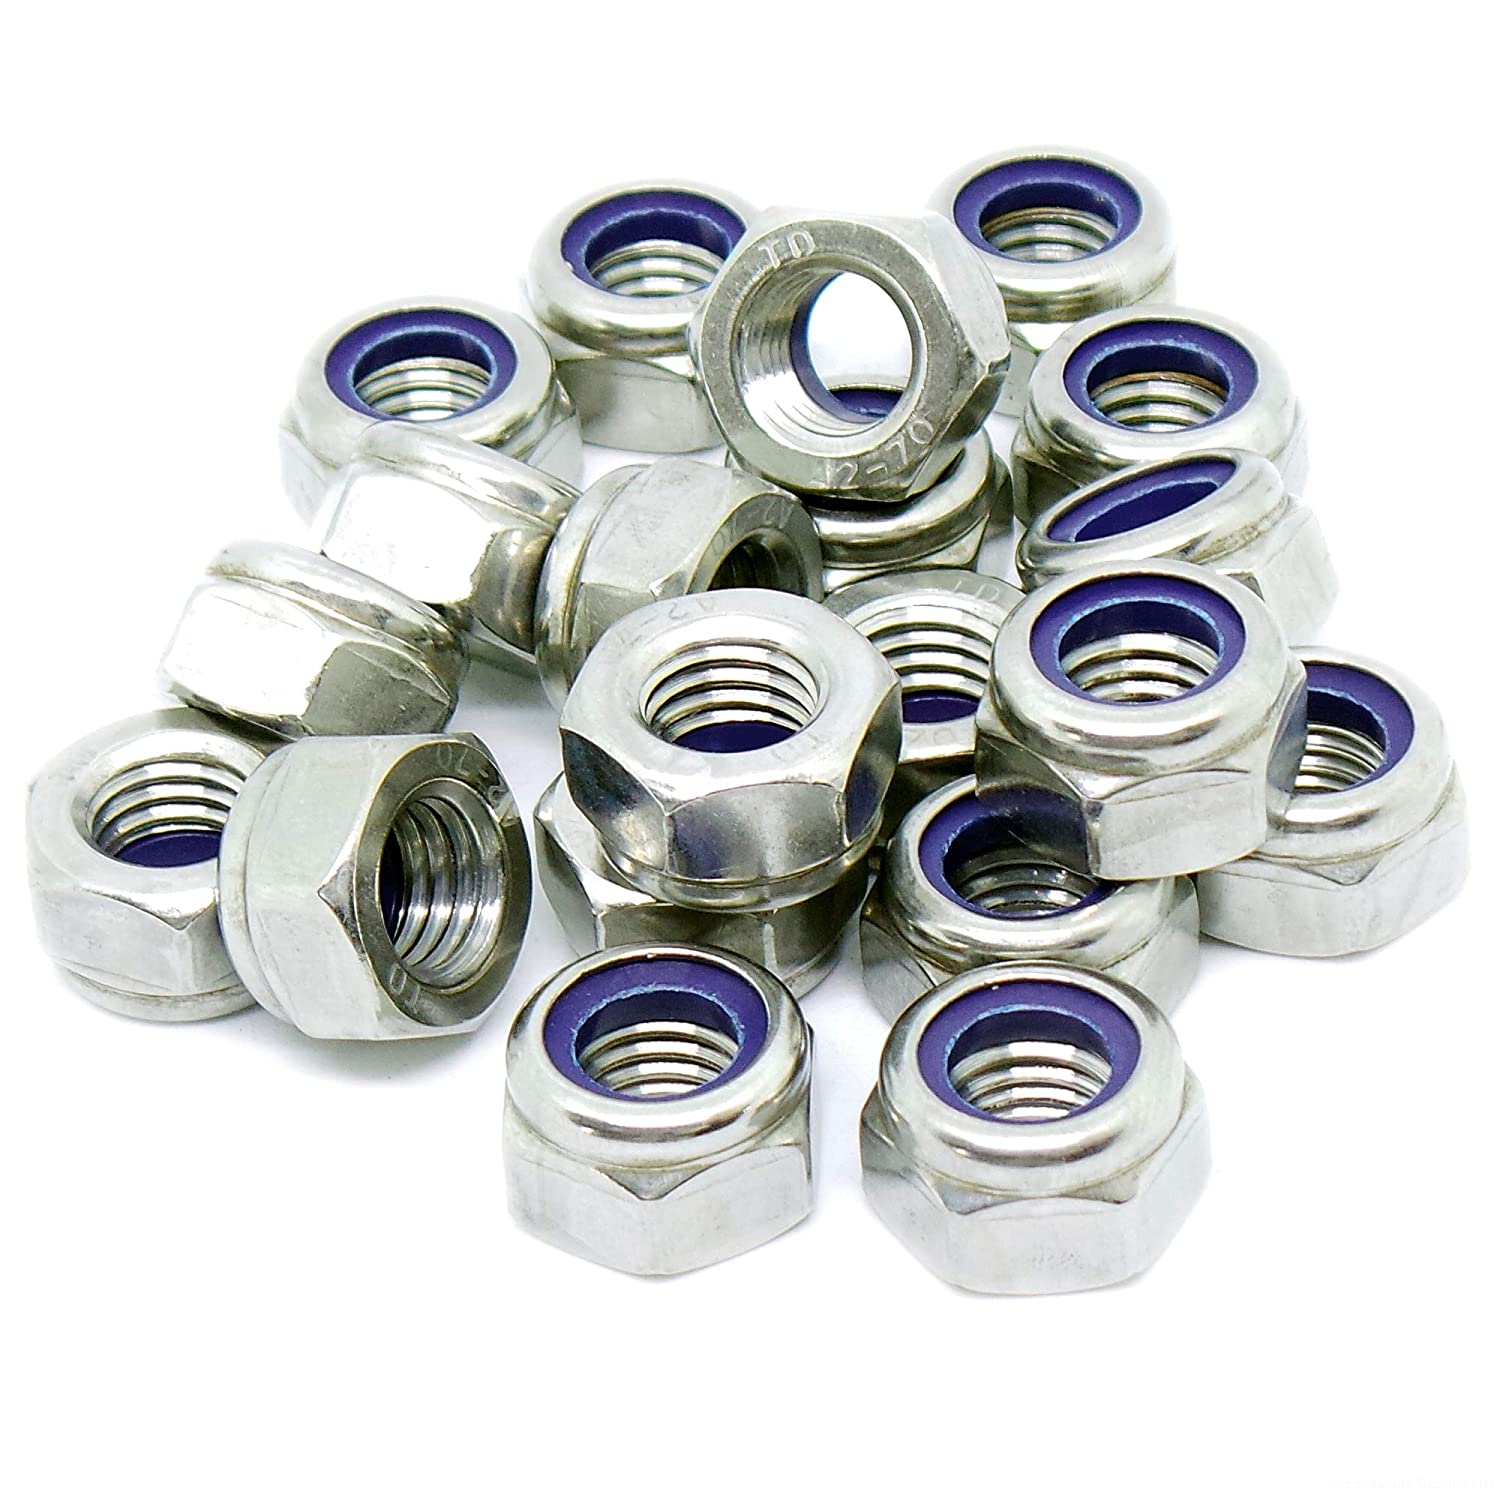 M8 (8mm) Nyloc Hex Nuts - Type-T - Stainless Steel (A2) (Pack of 20) Singularity Supplies Ltd